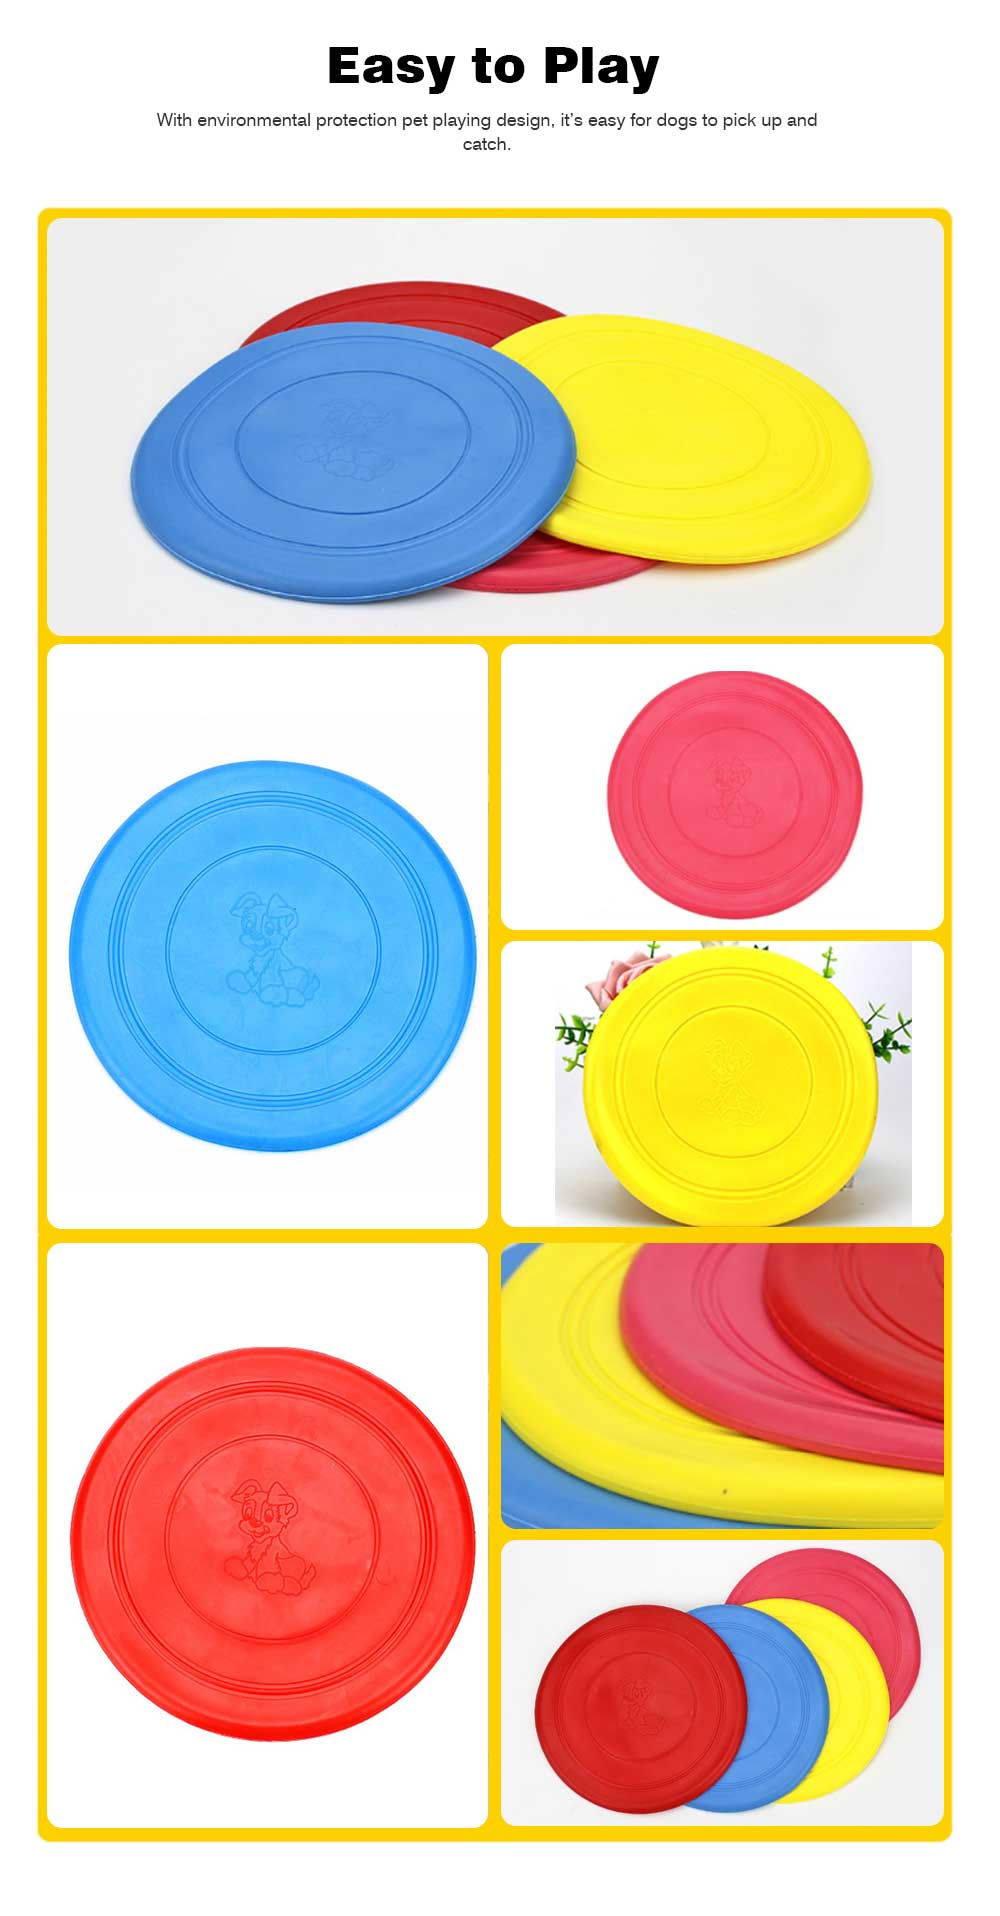 Dog Silicone Soft Frisbee Toy Bite Resistant for Throwing Interactive Pets Training Outdoors 6